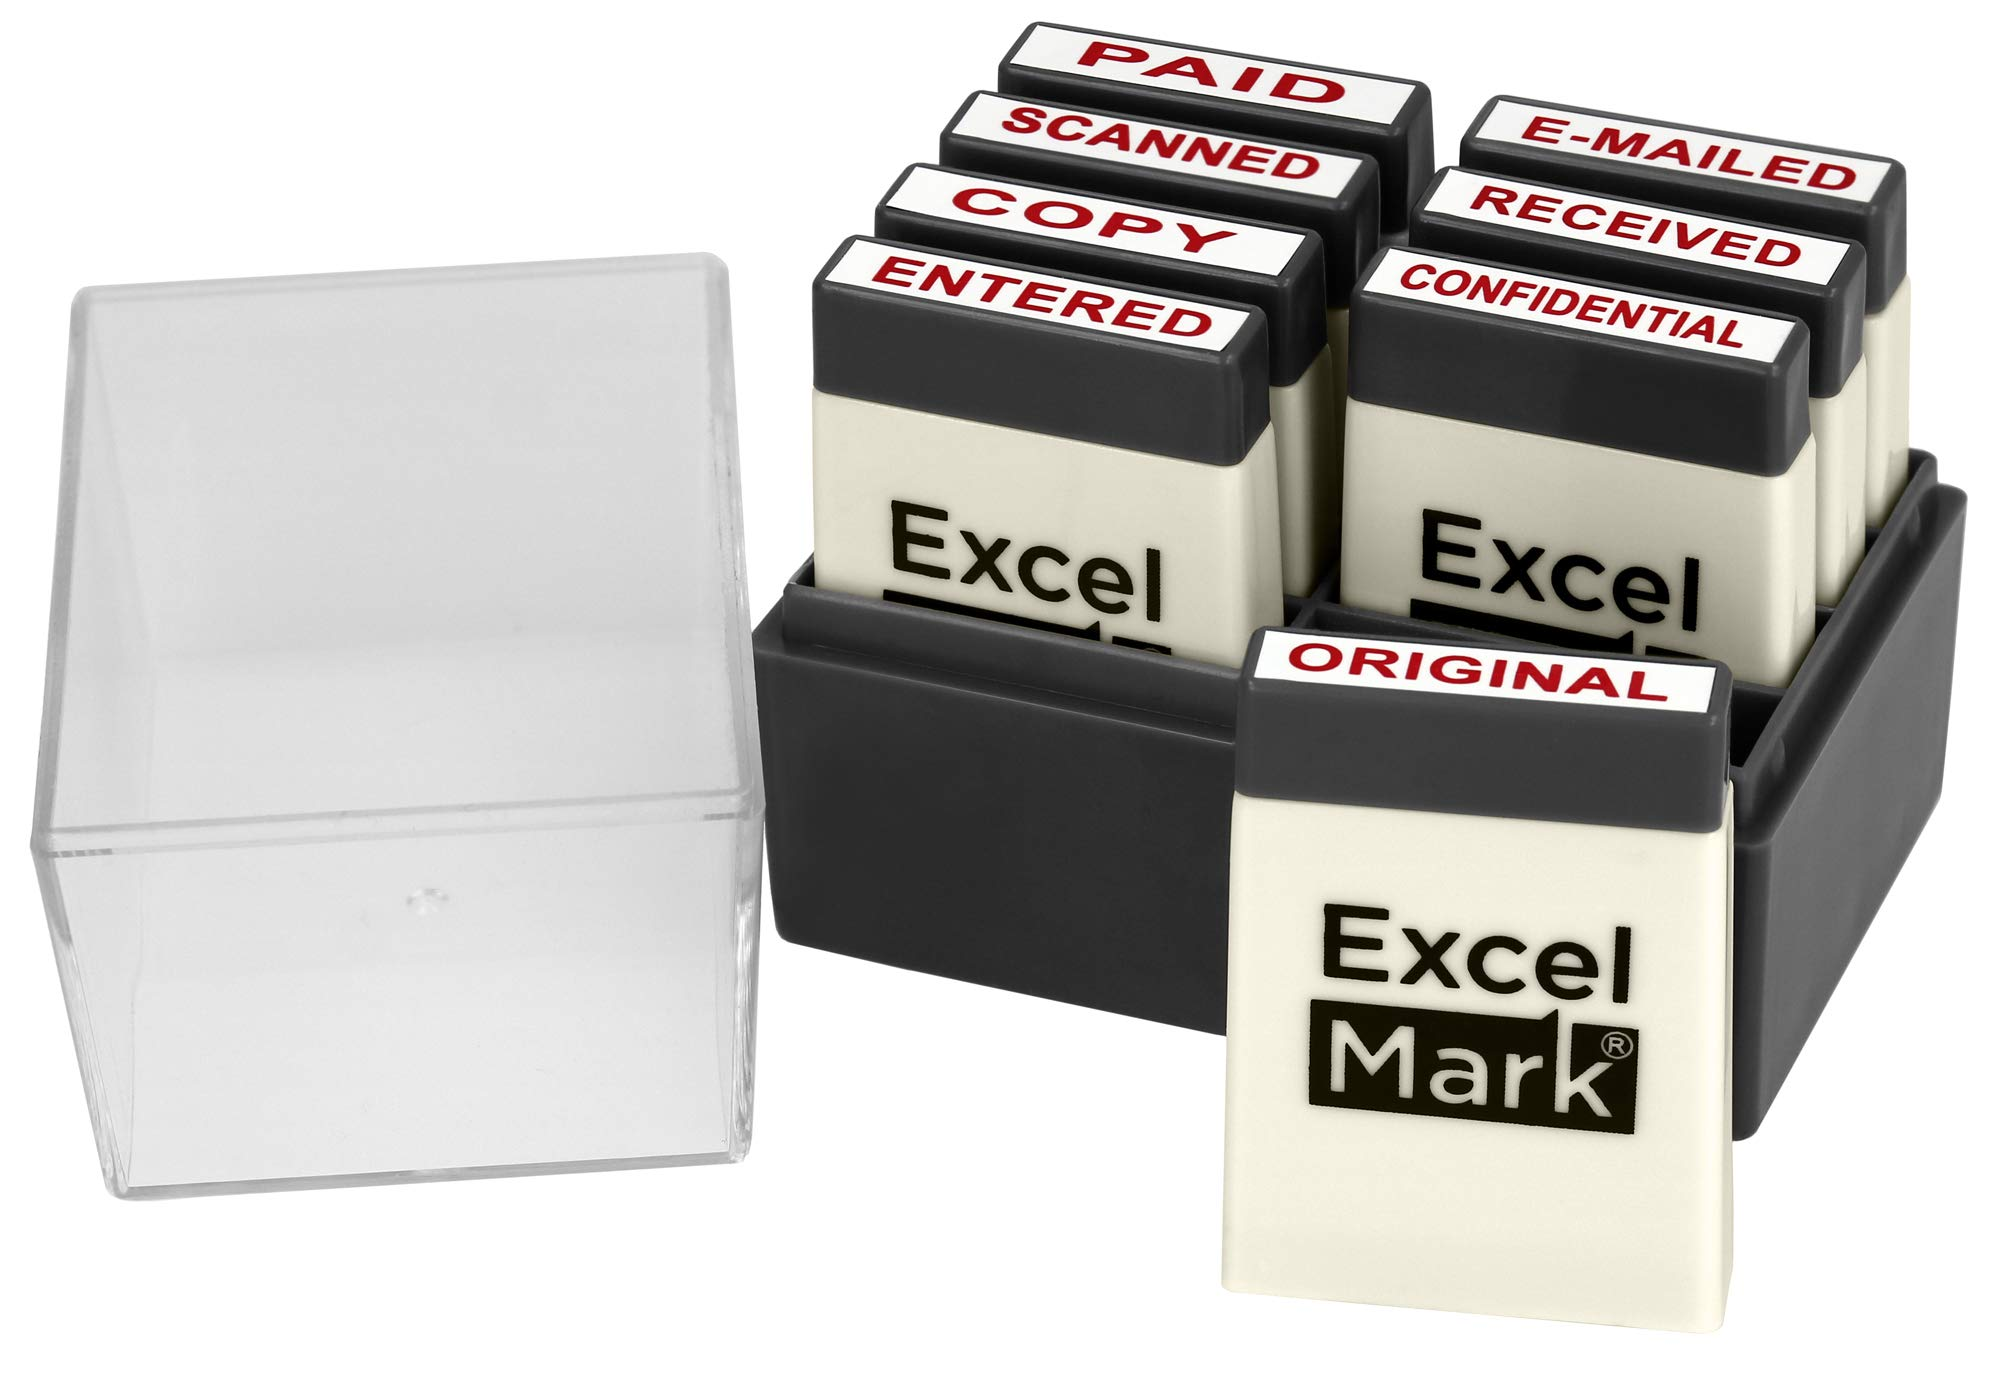 ExcelMark Mini Office Message Rubber Stamp Set - Red Ink - Storage Tray Included by ExcelMark